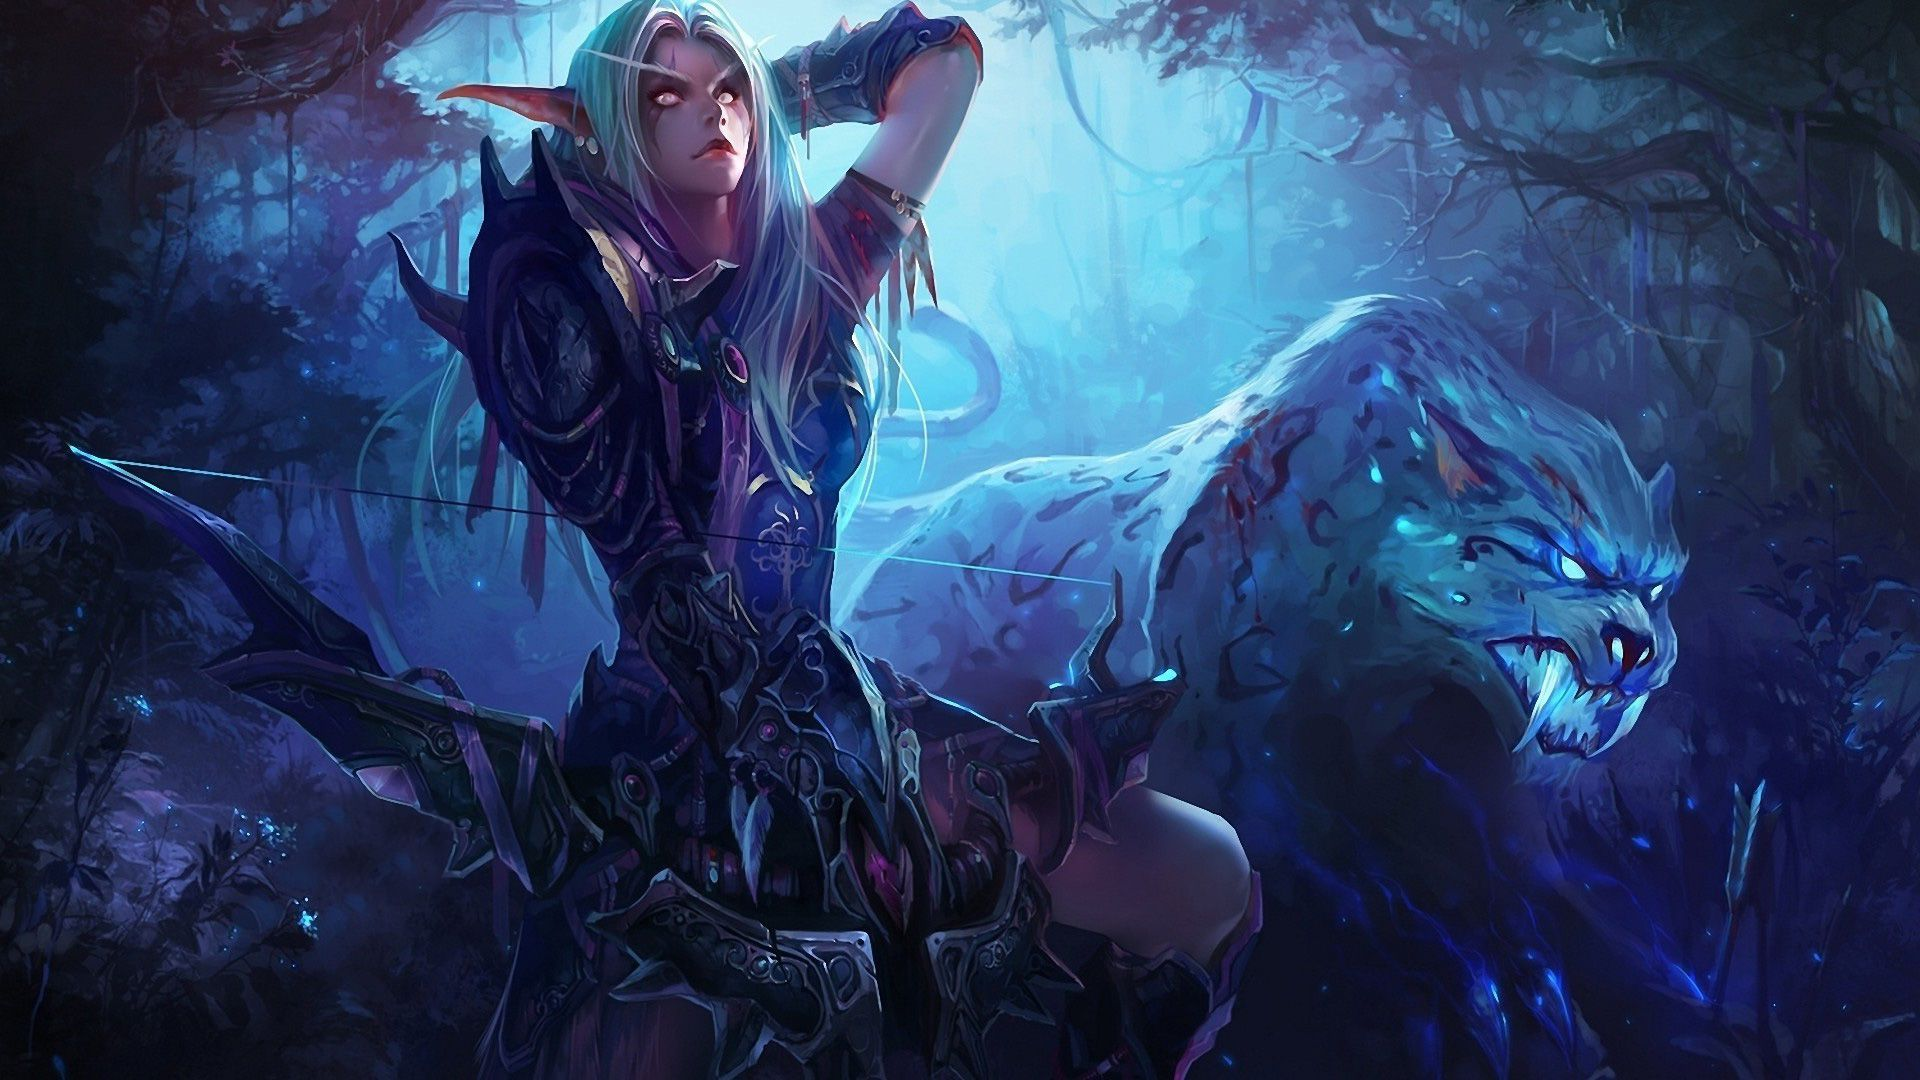 World of warcraft hunter and pet hentia sex download